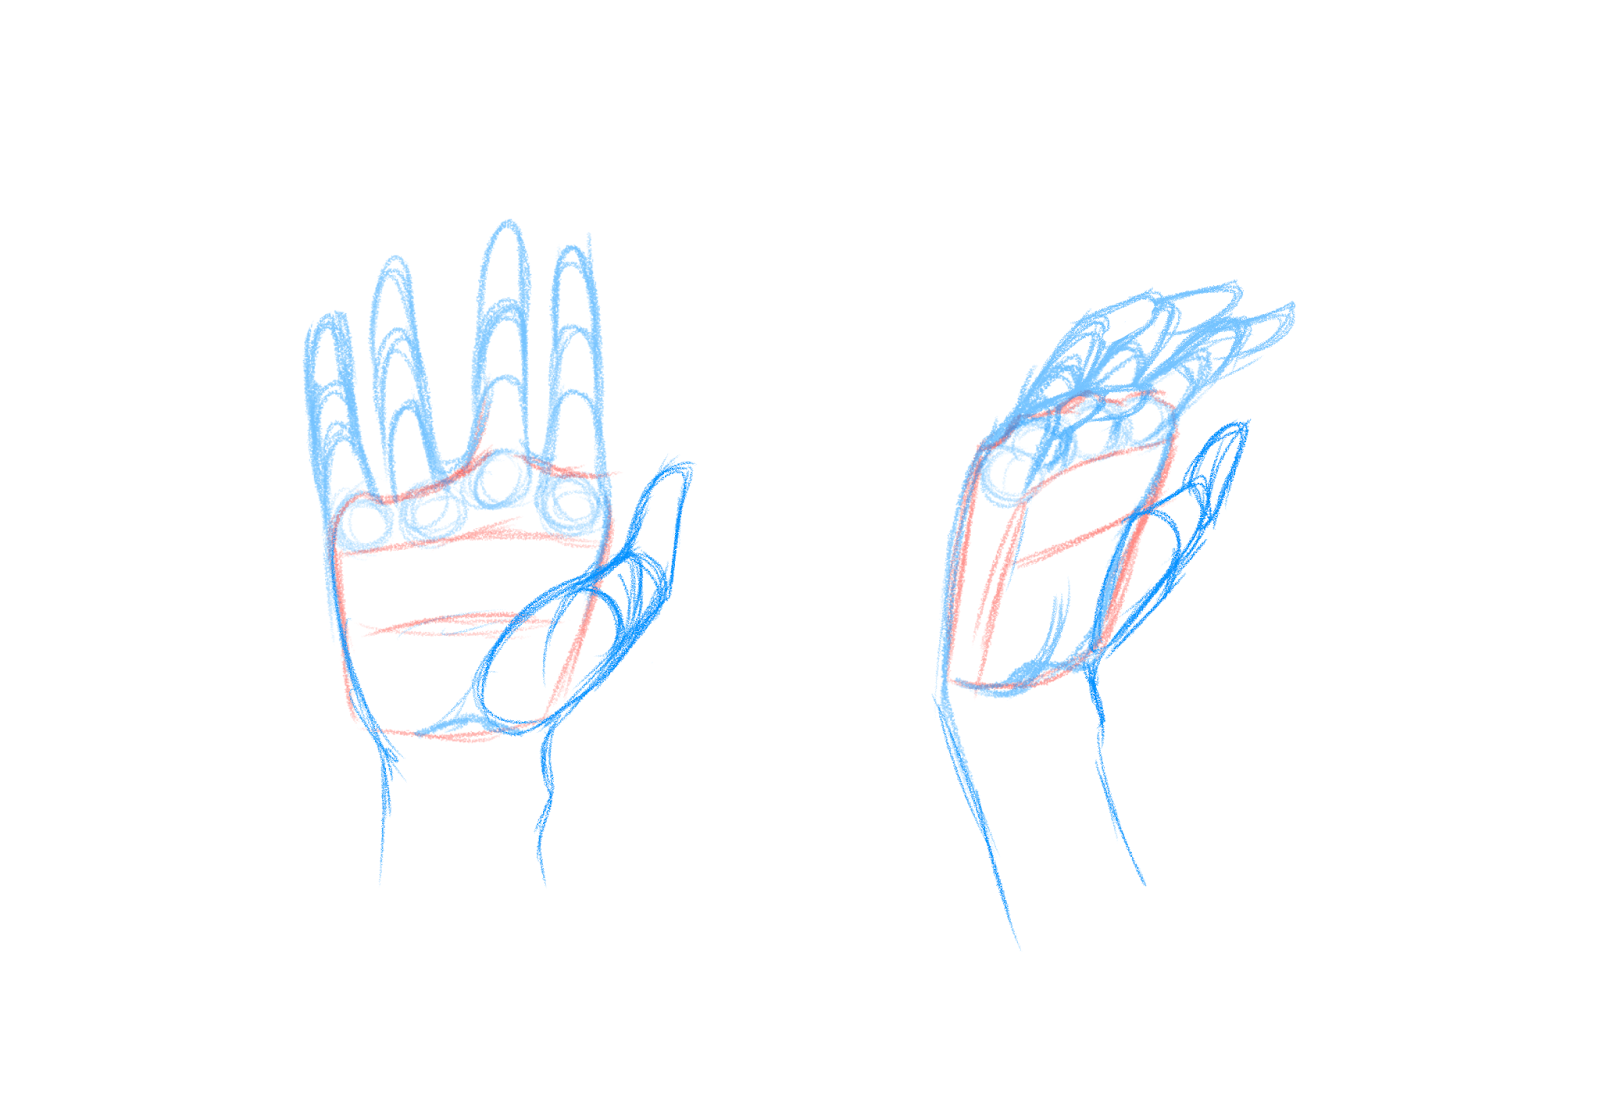 Draw The Thumb Joints Here I'm Drawing The Hands As Relaxed As Possible  And In A Neutral Pose Position